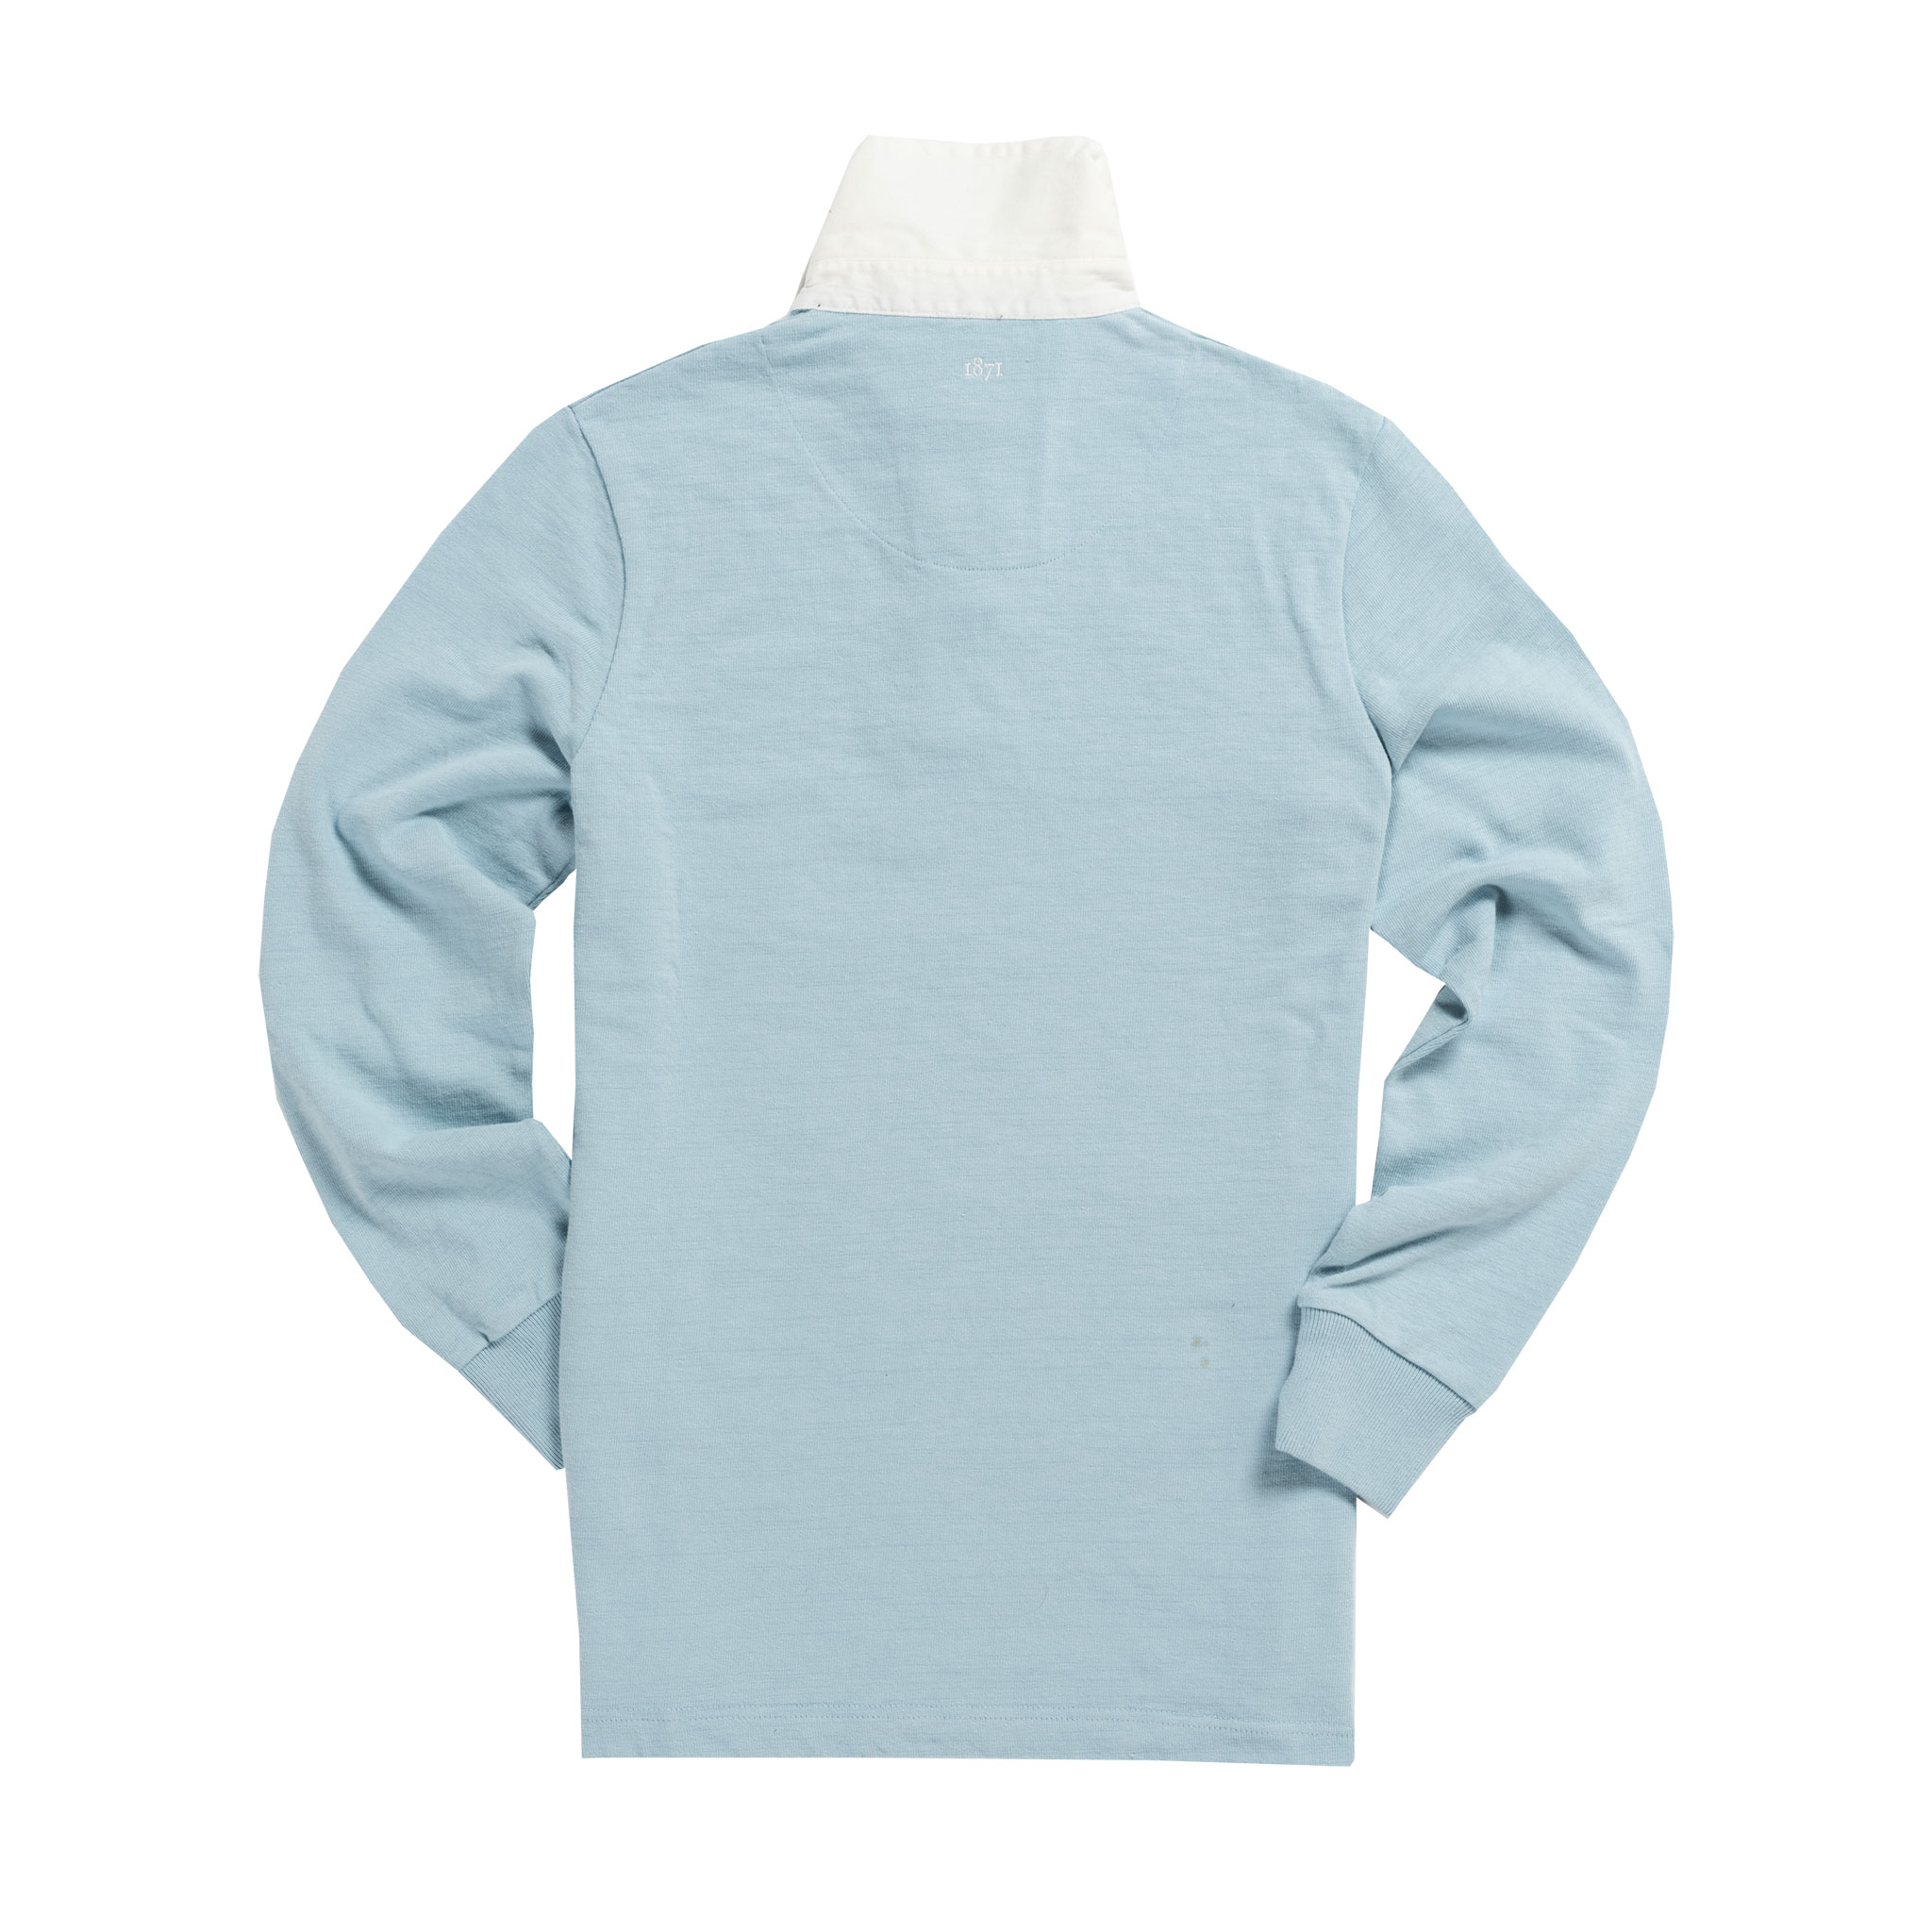 Women's Classic Sky Blue 1871 Vintage Rugby Shirt